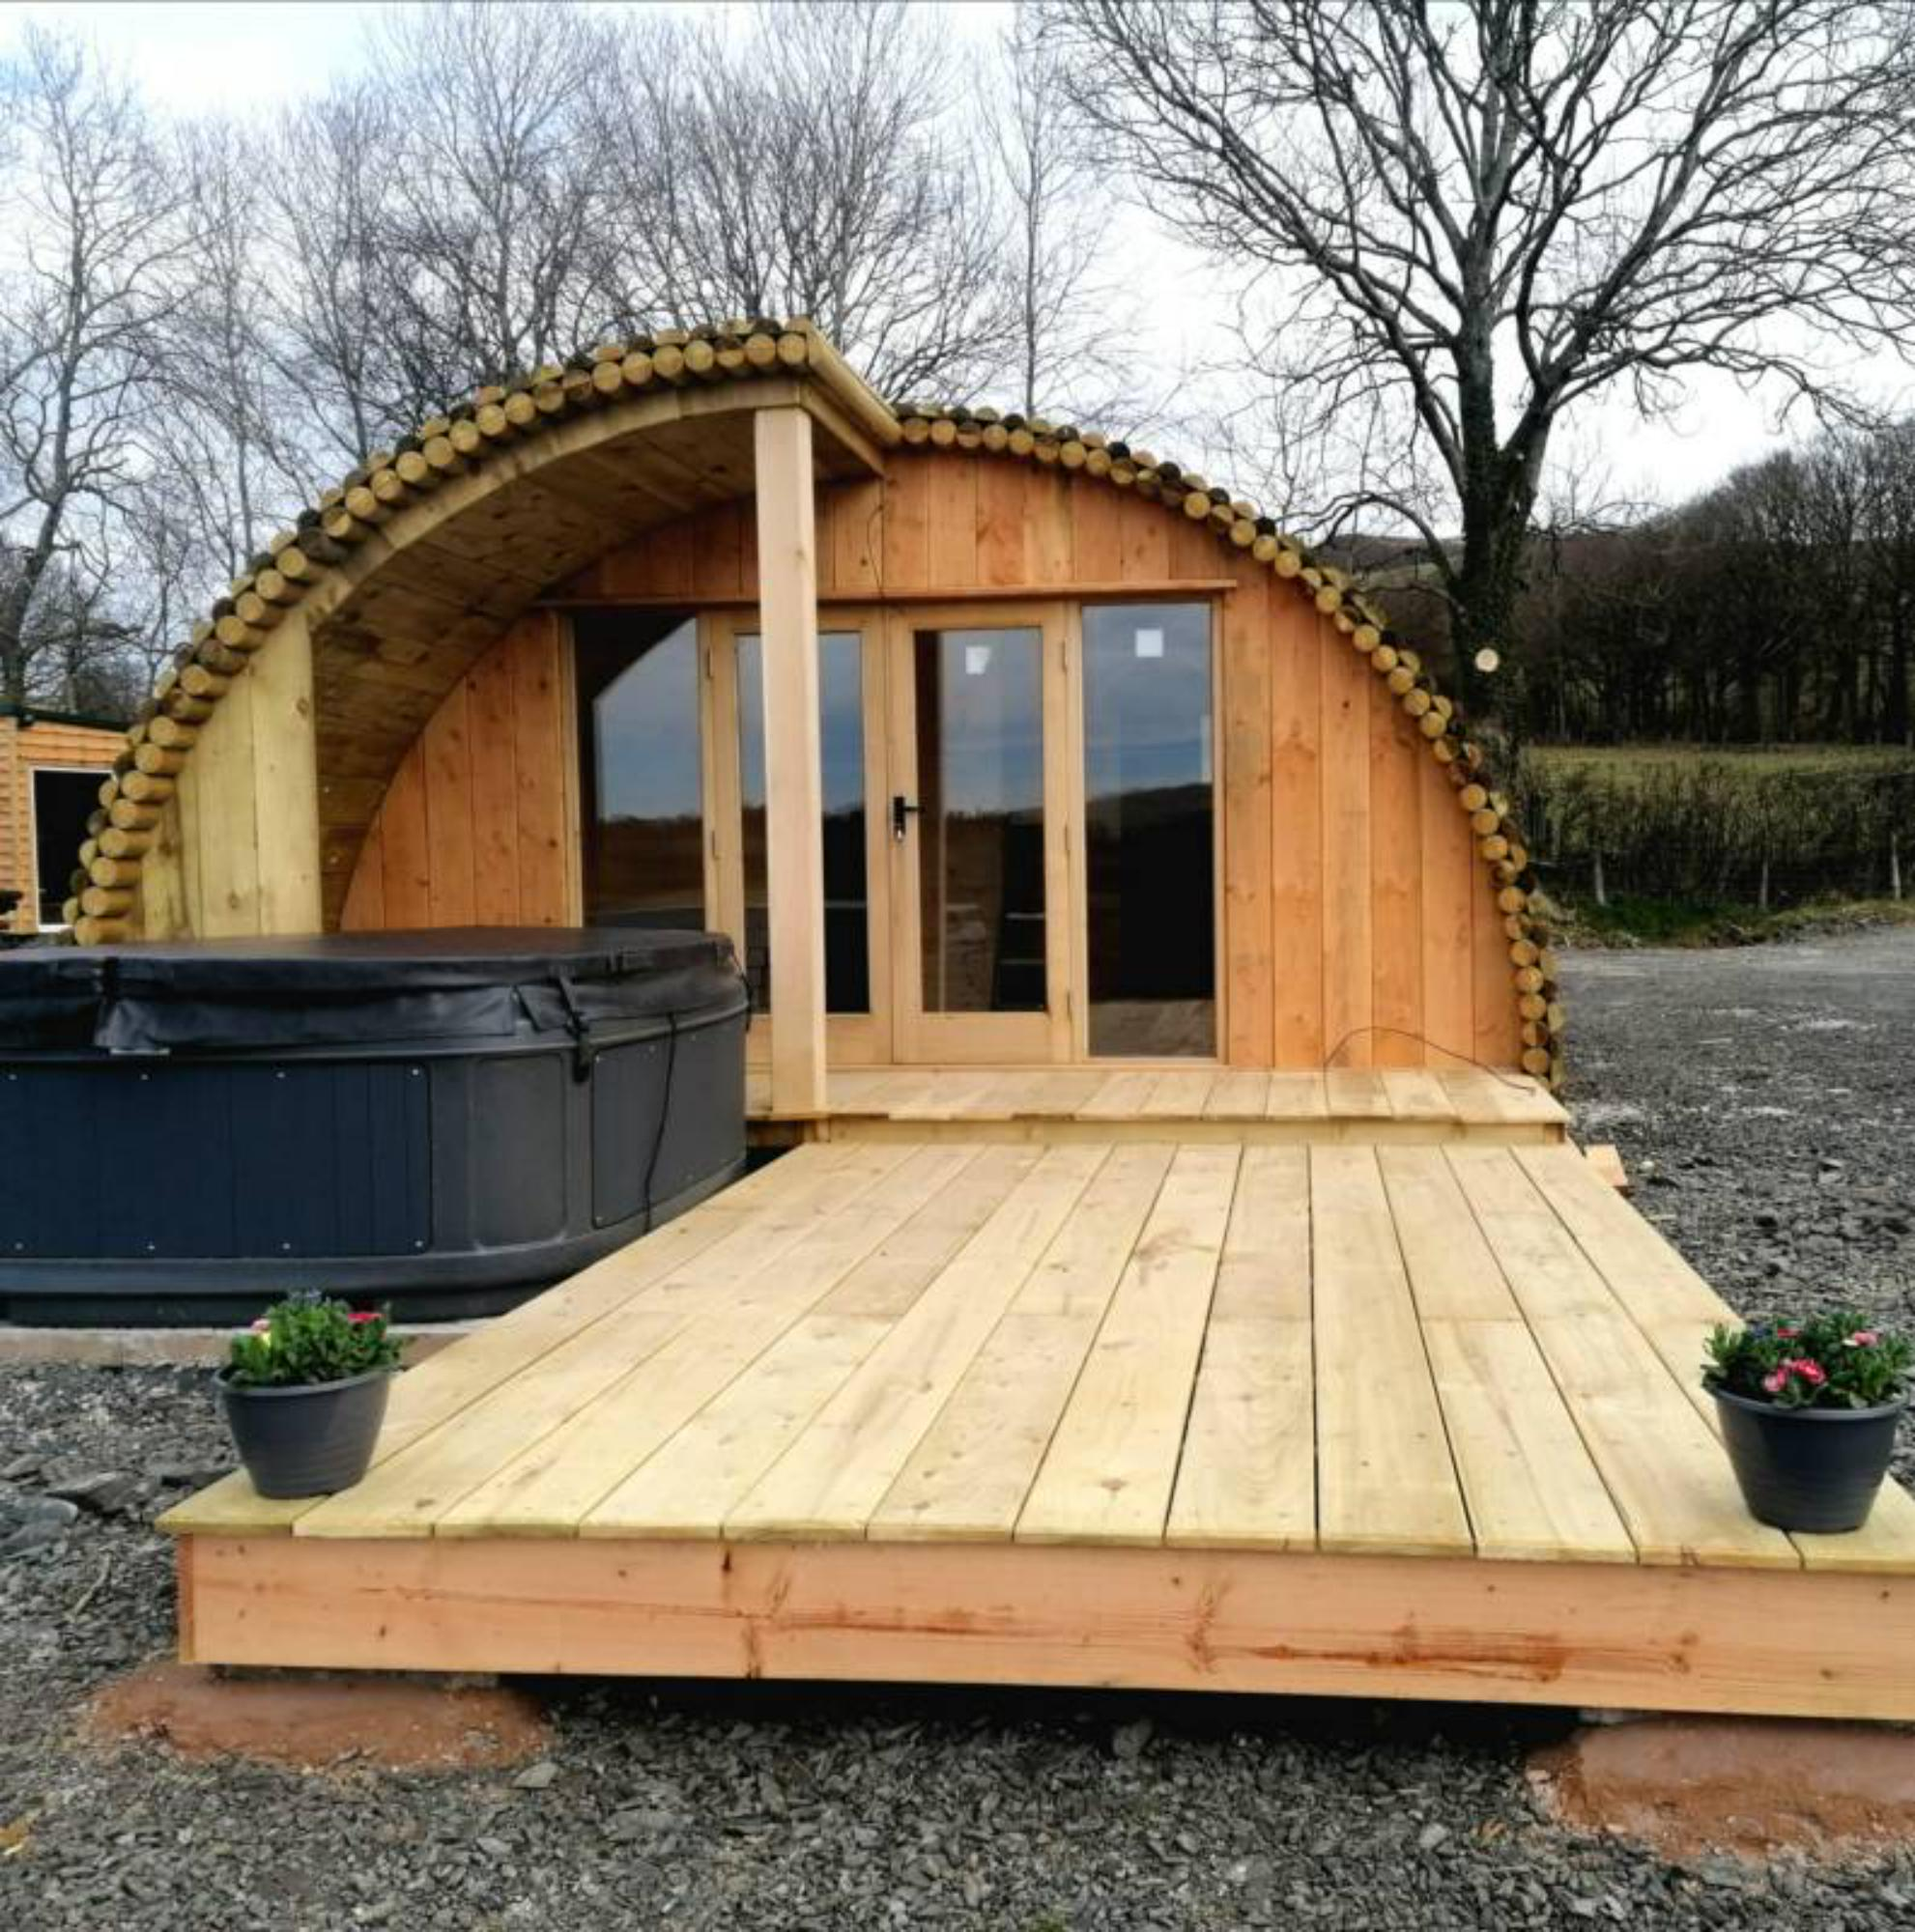 Glamping in Mid Wales – I Love This Campsite